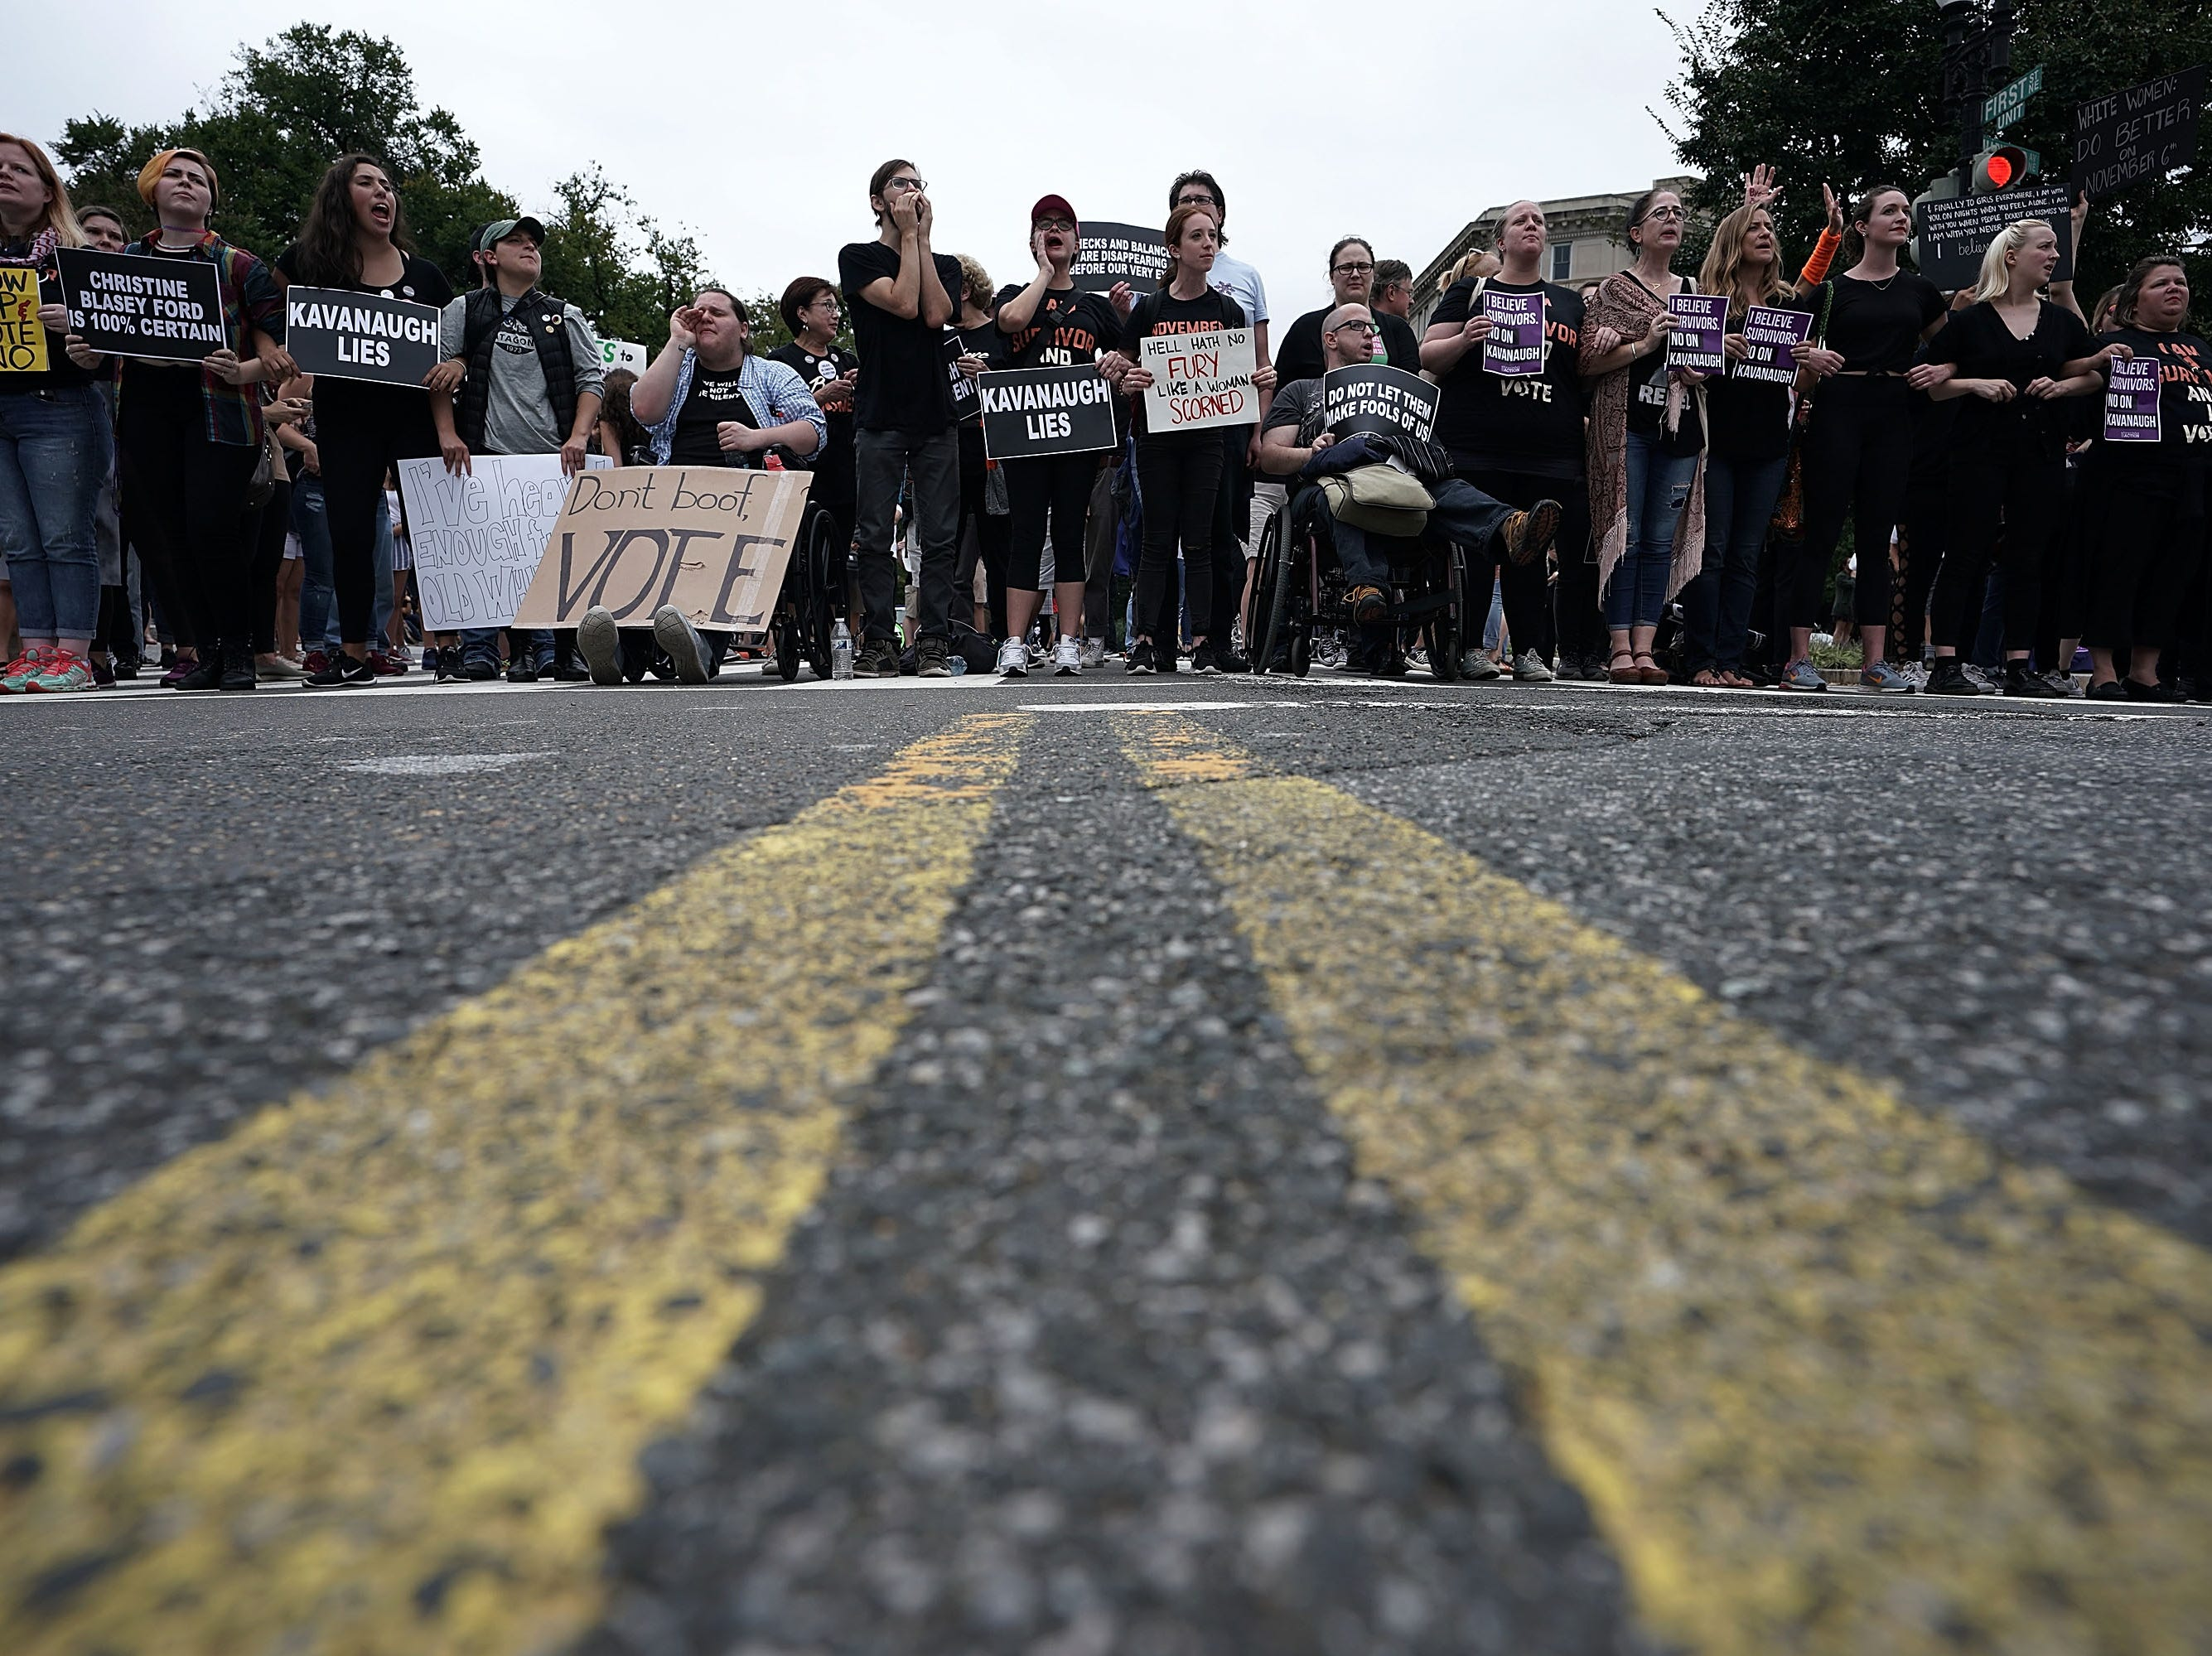 WASHINGTON, DC - OCTOBER 06:  Activists block a street in front of the U.S. Supreme Court to protest against the confirmation of Judge Brett Kavanaugh to the Supreme Court October 6, 2018 in Washington, DC. The Senate voted 50-48 to confirm Kavanaugh to replace retired Associate Justice Anthony Kennedy.  (Photo by Alex Wong/Getty Images)